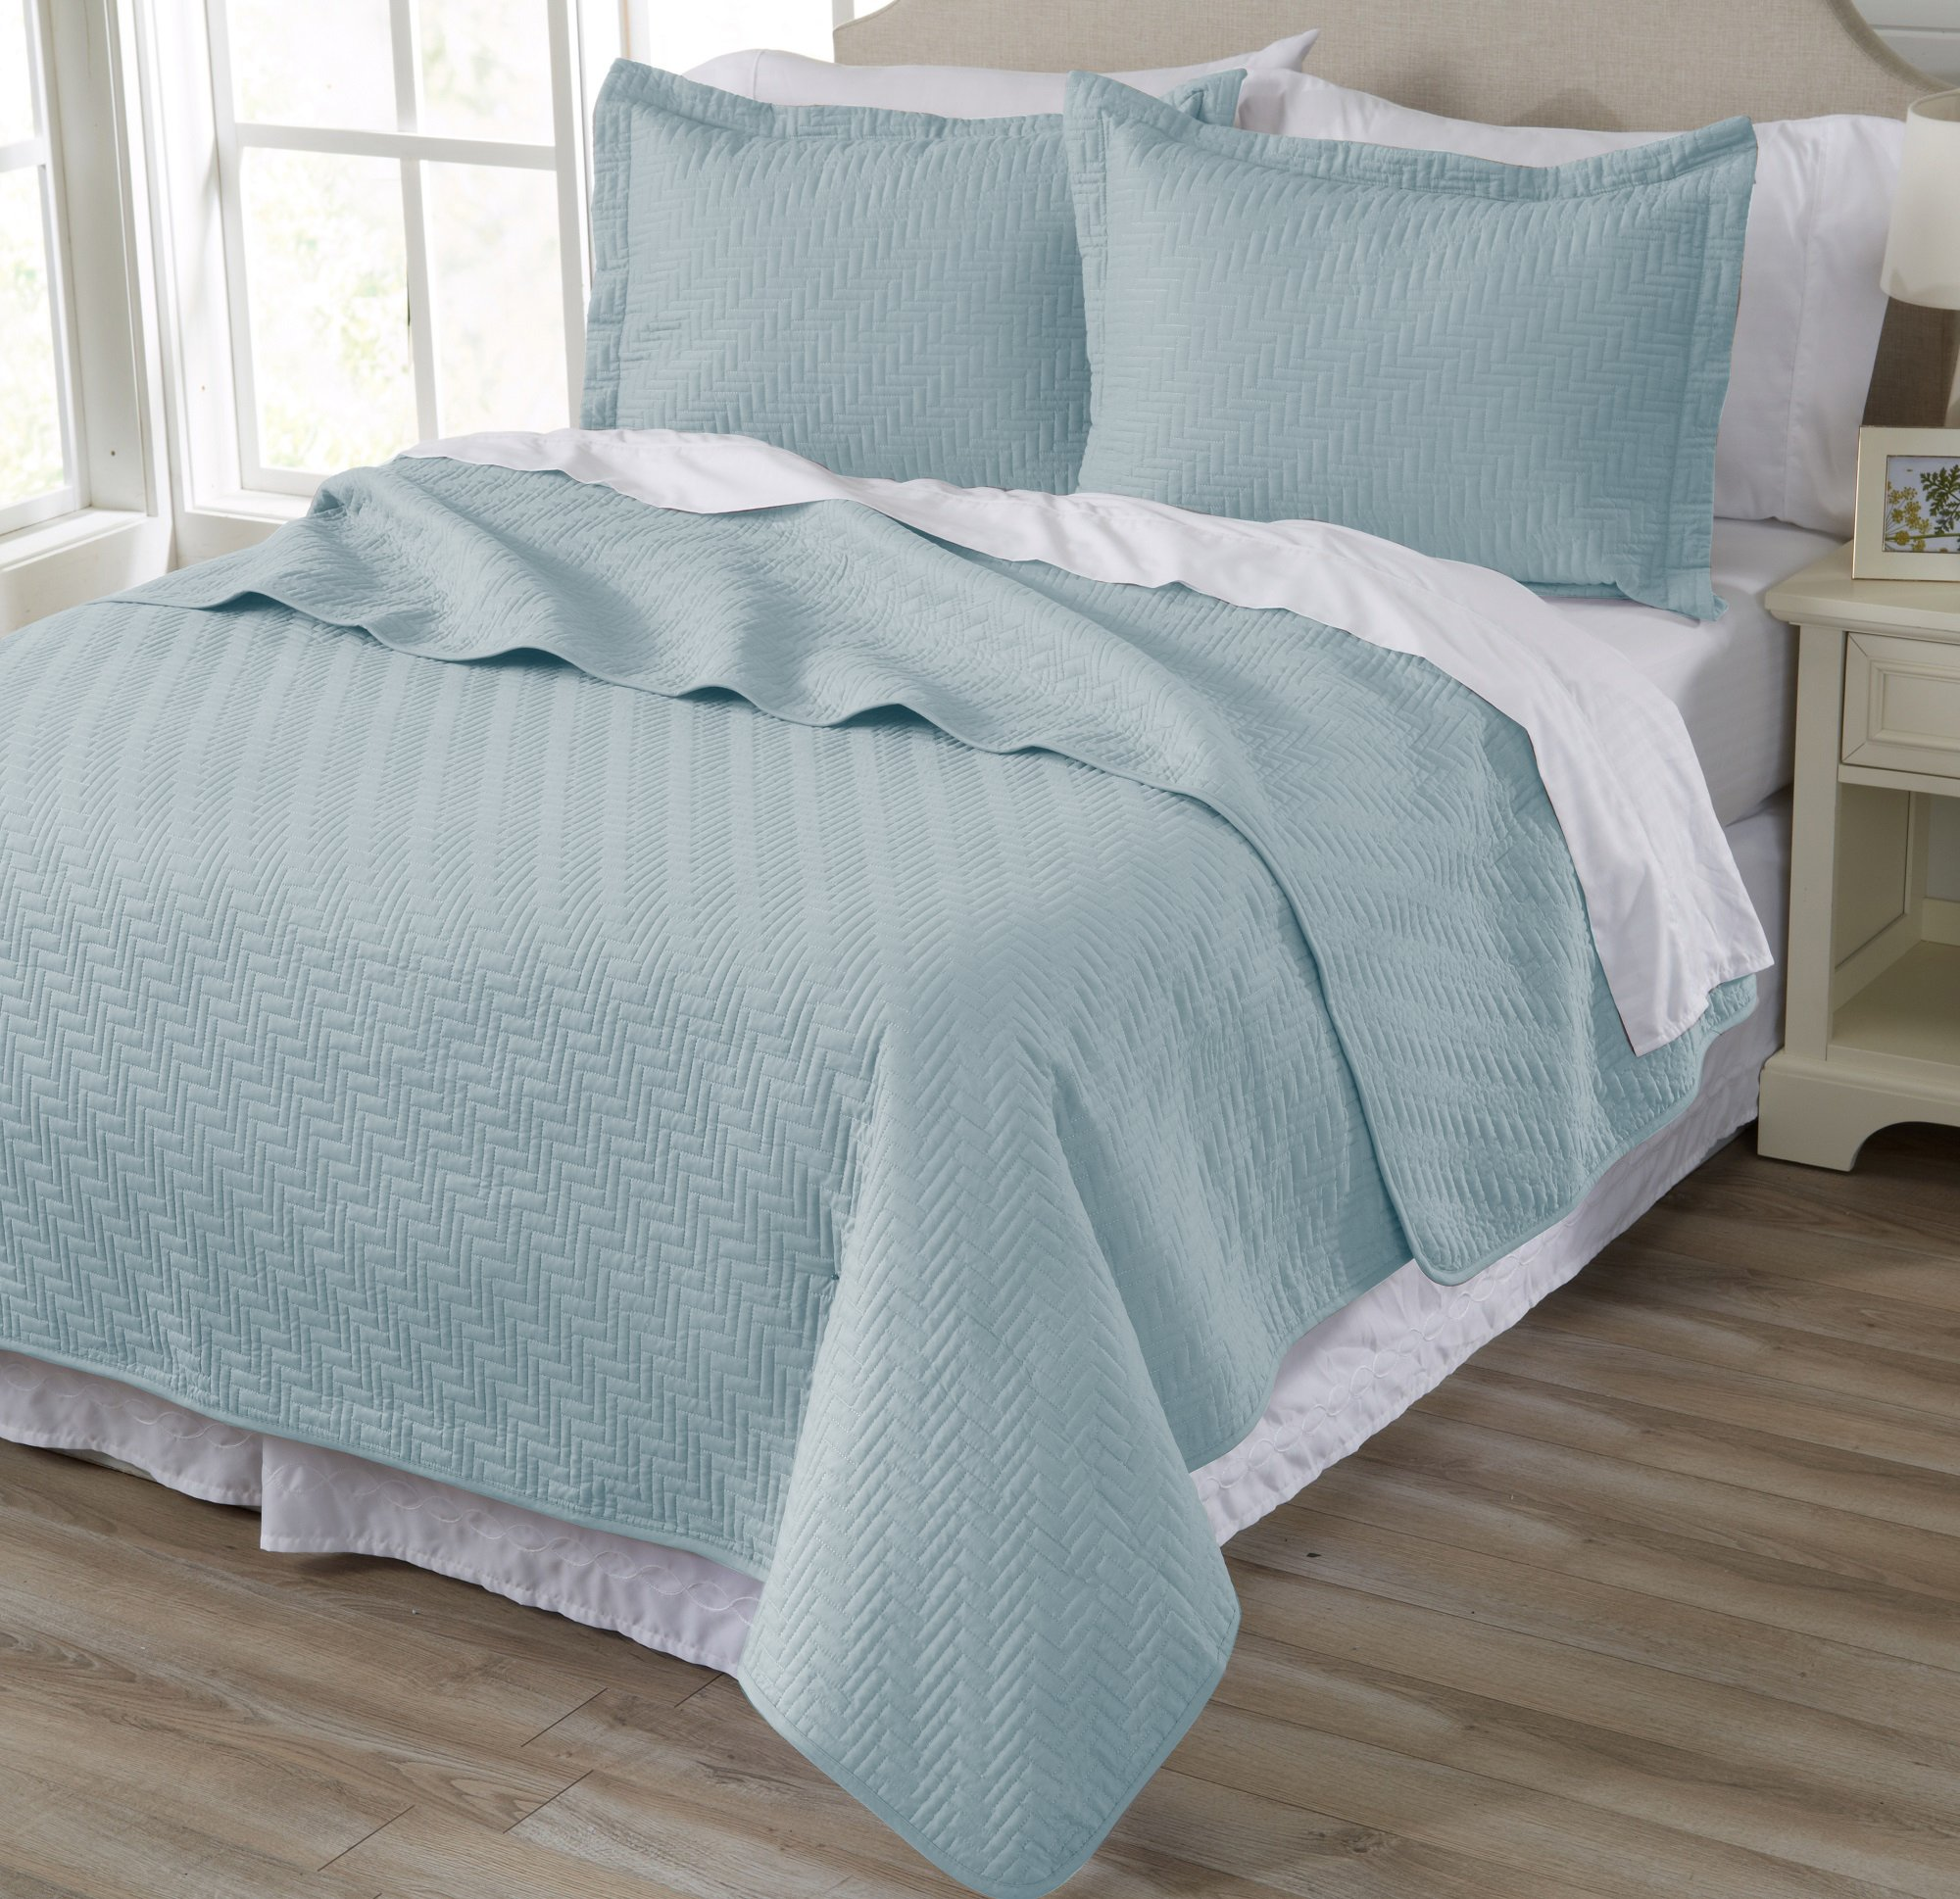 Home Fashion Designs Emerson Collection 3-Piece Luxury Quilt Set with Shams. Soft All-Season Microfiber Bedspread and Coverlet in Solid Colors. By Brand. (Twin, Cloud Blue)